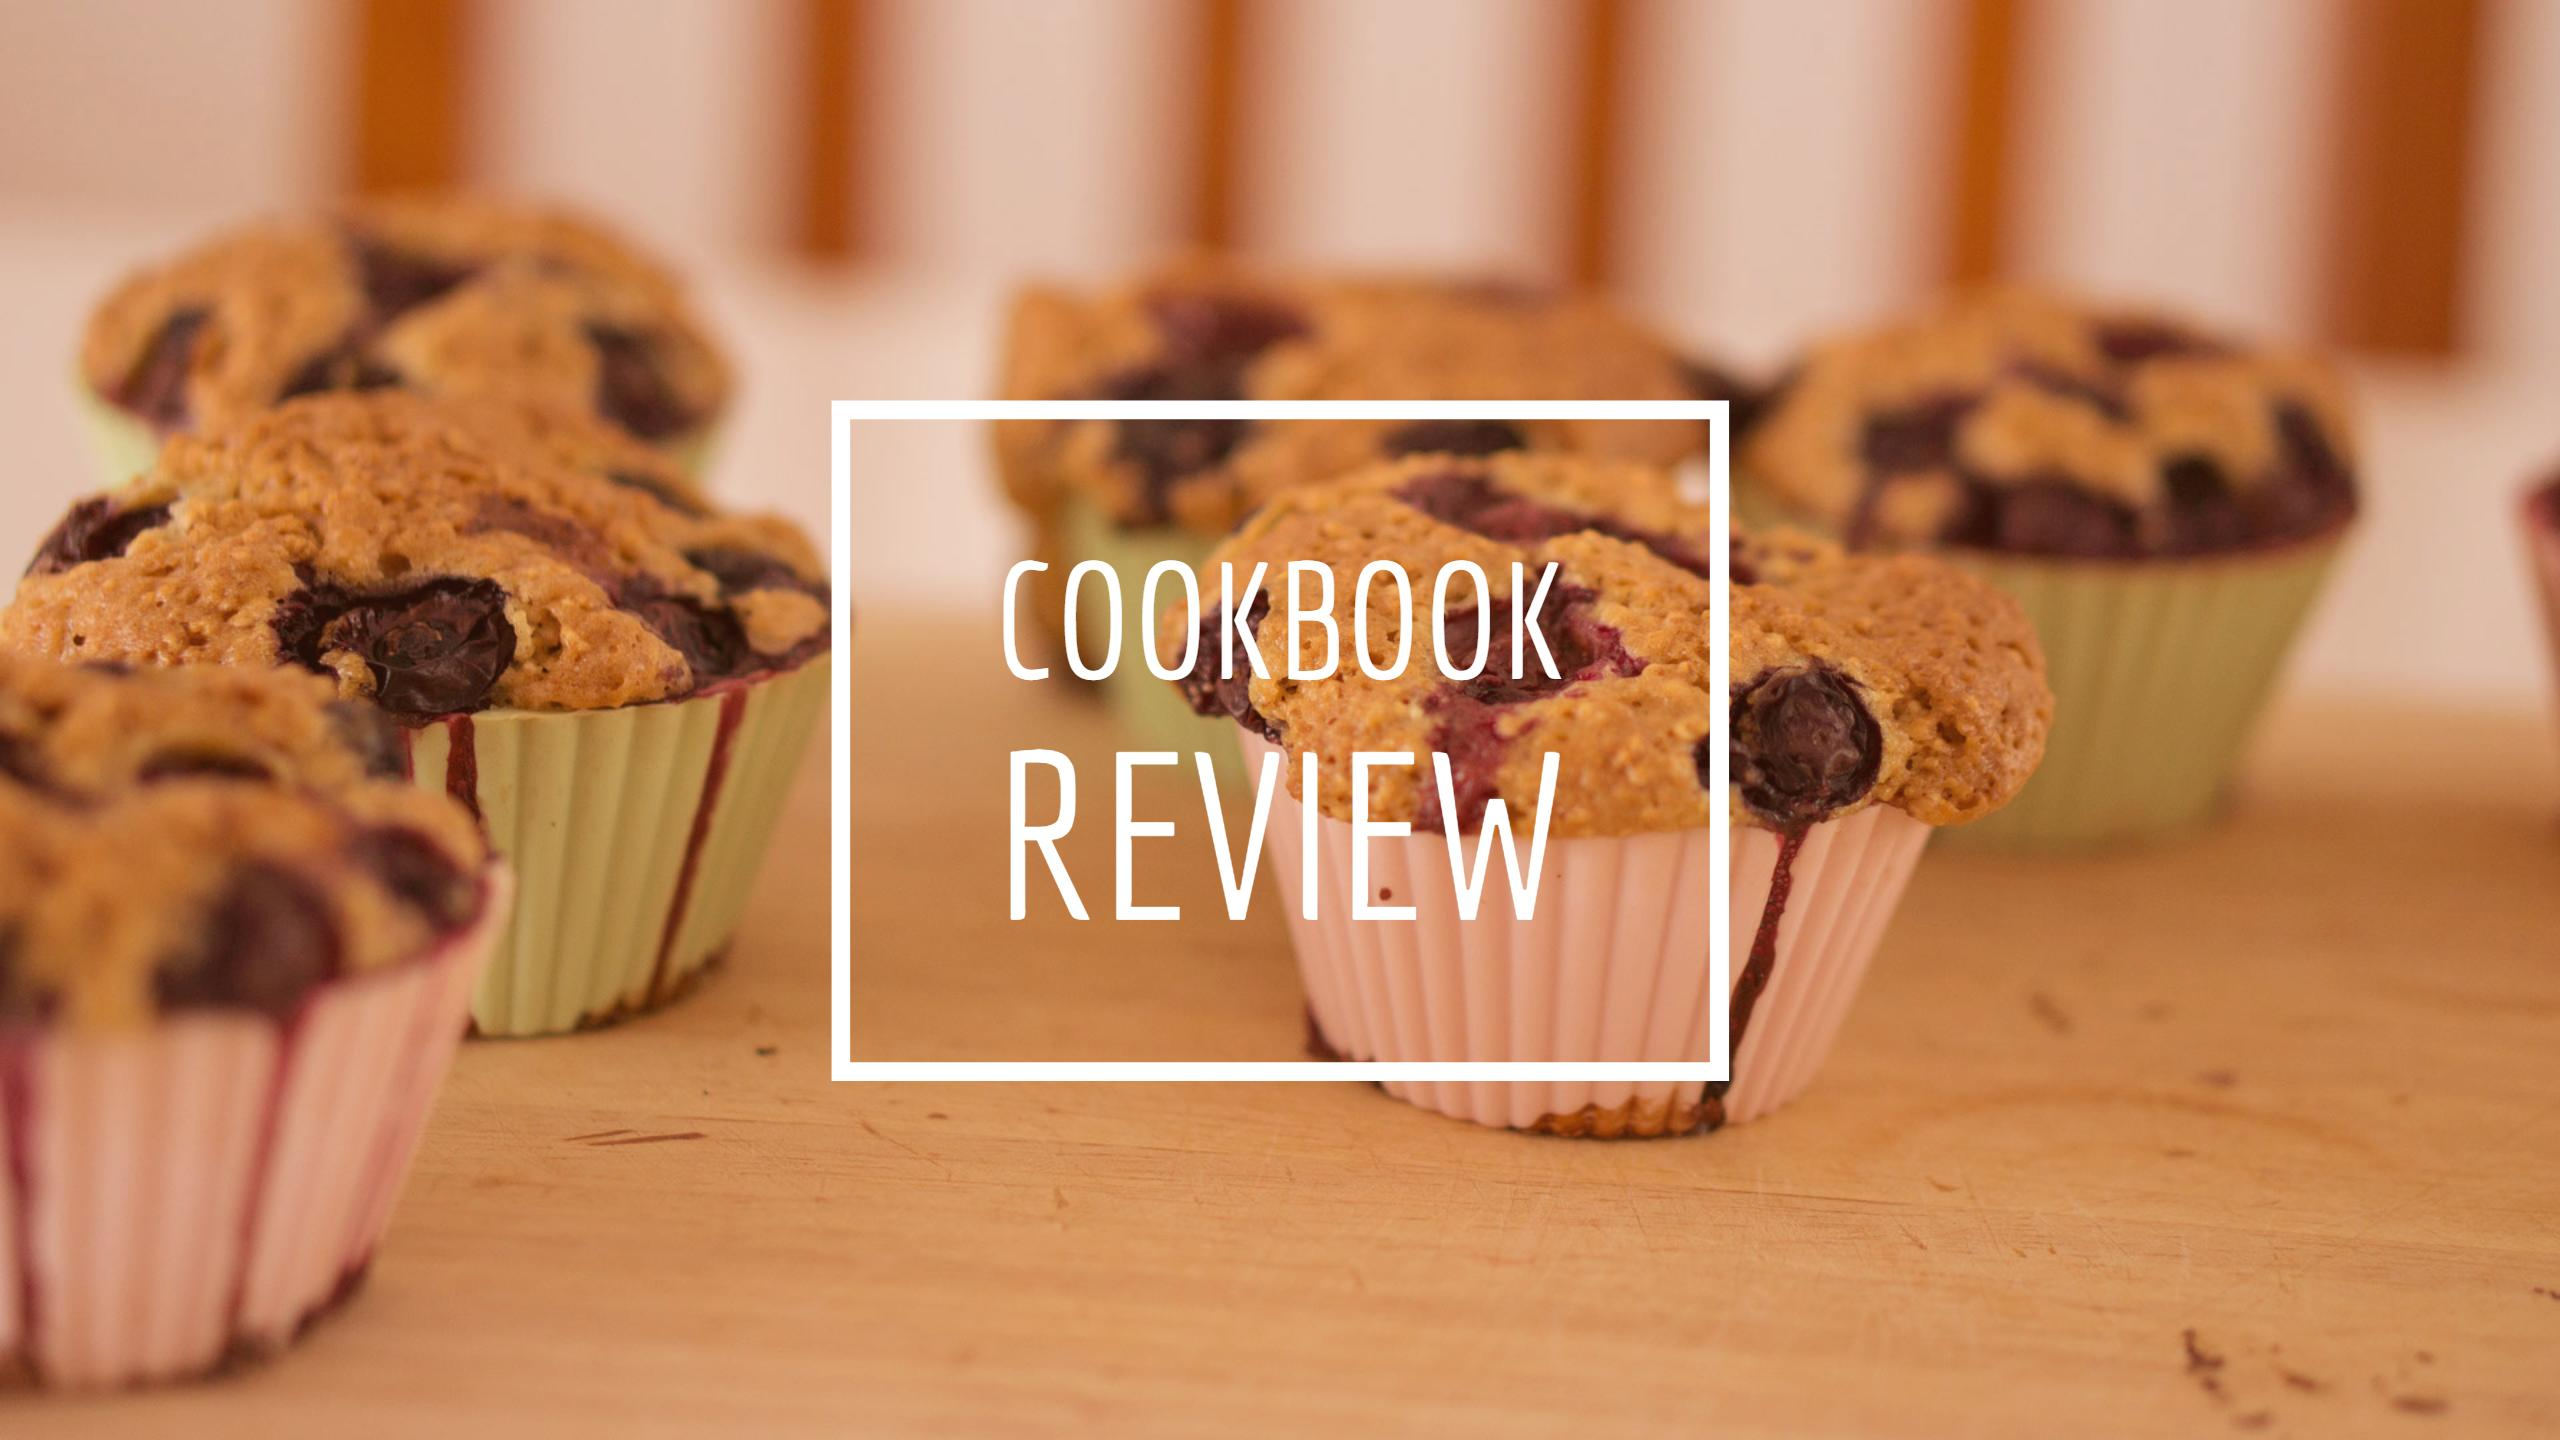 Huckleberry : Cookbook Review